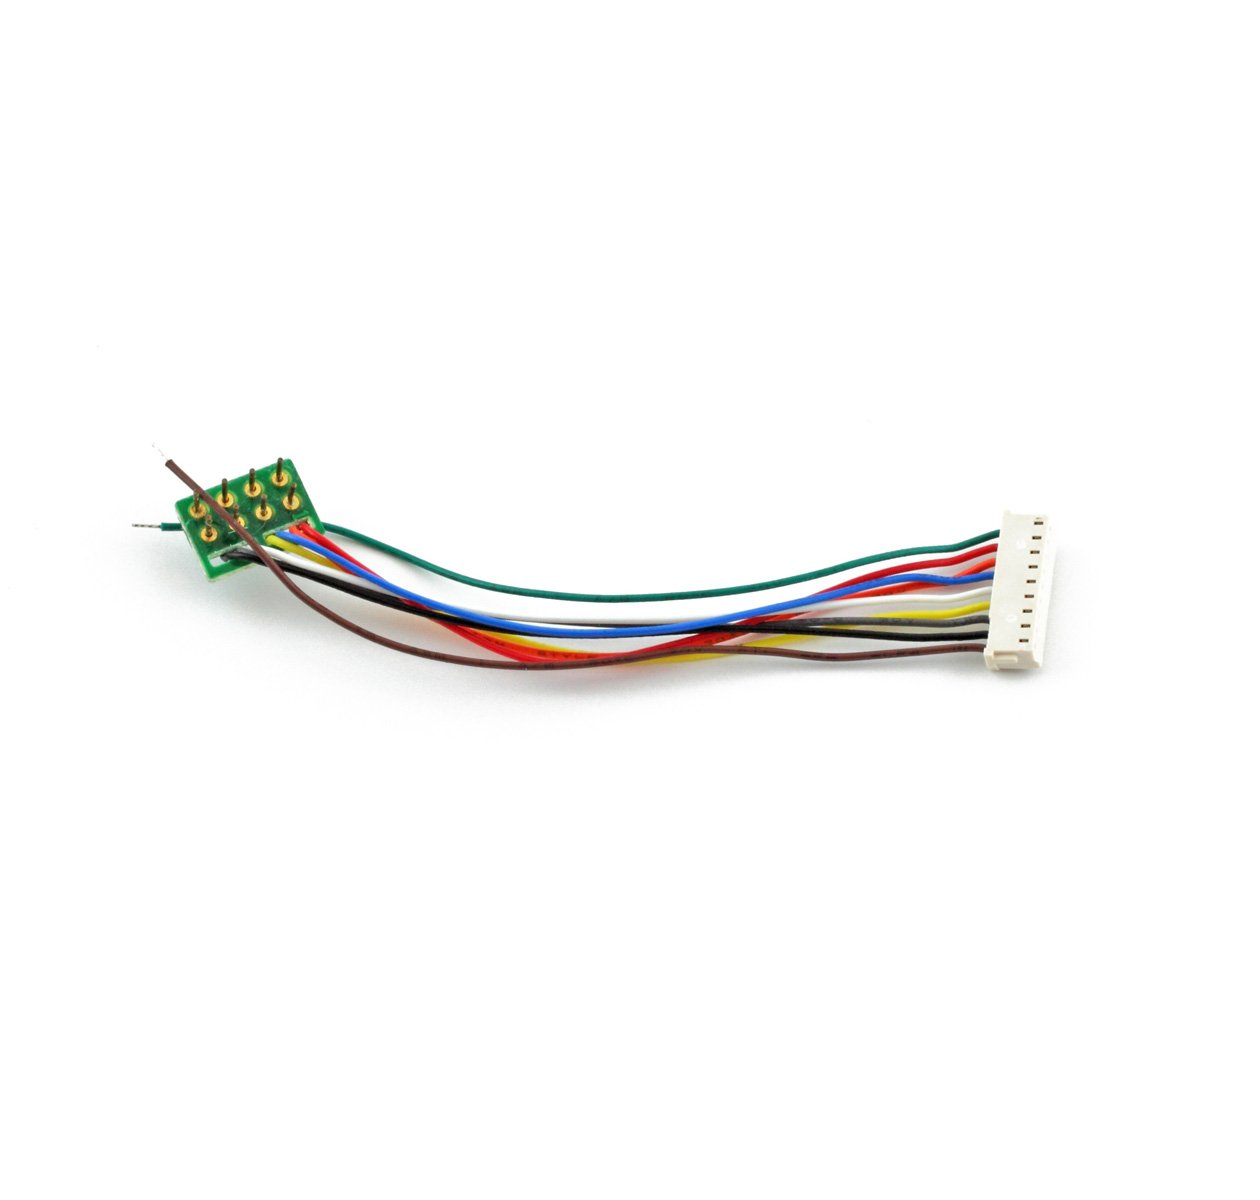 soundtraxx_810135_9-pin_nmra_wiring_harness